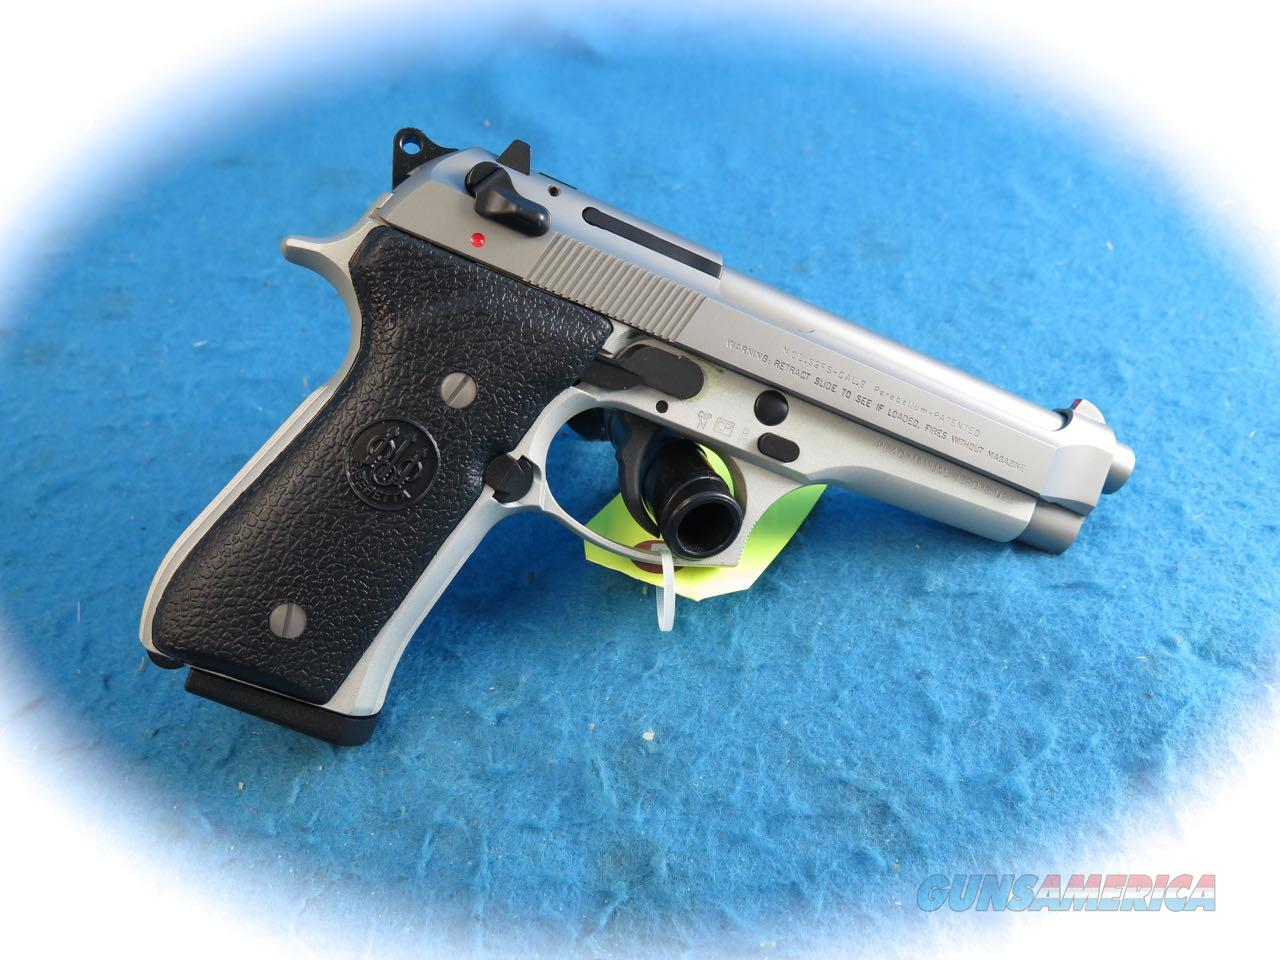 Beretta Model 92FS Inox 9mm Pistol Made in Italy **New**  Guns > Pistols > Beretta Pistols > Model 92 Series